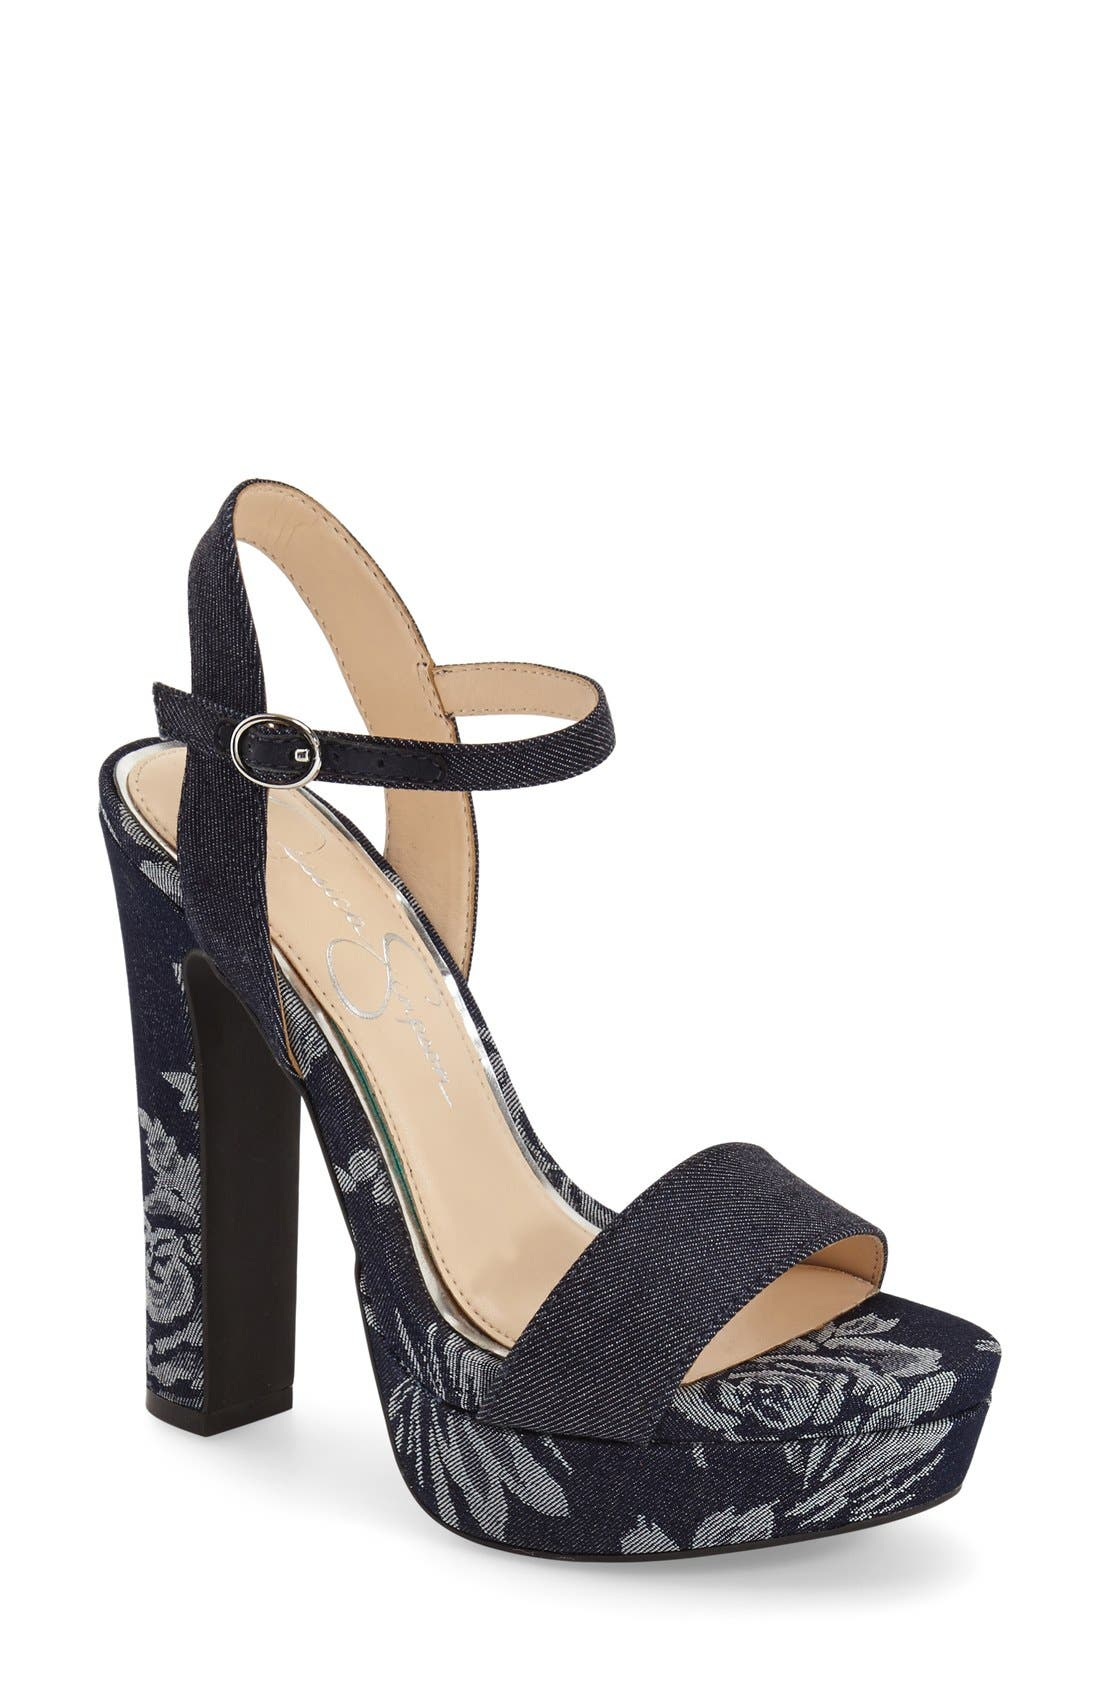 Alternate Image 1 Selected - Jessica Simpson 'Blaney' Platform Sandal (Women)